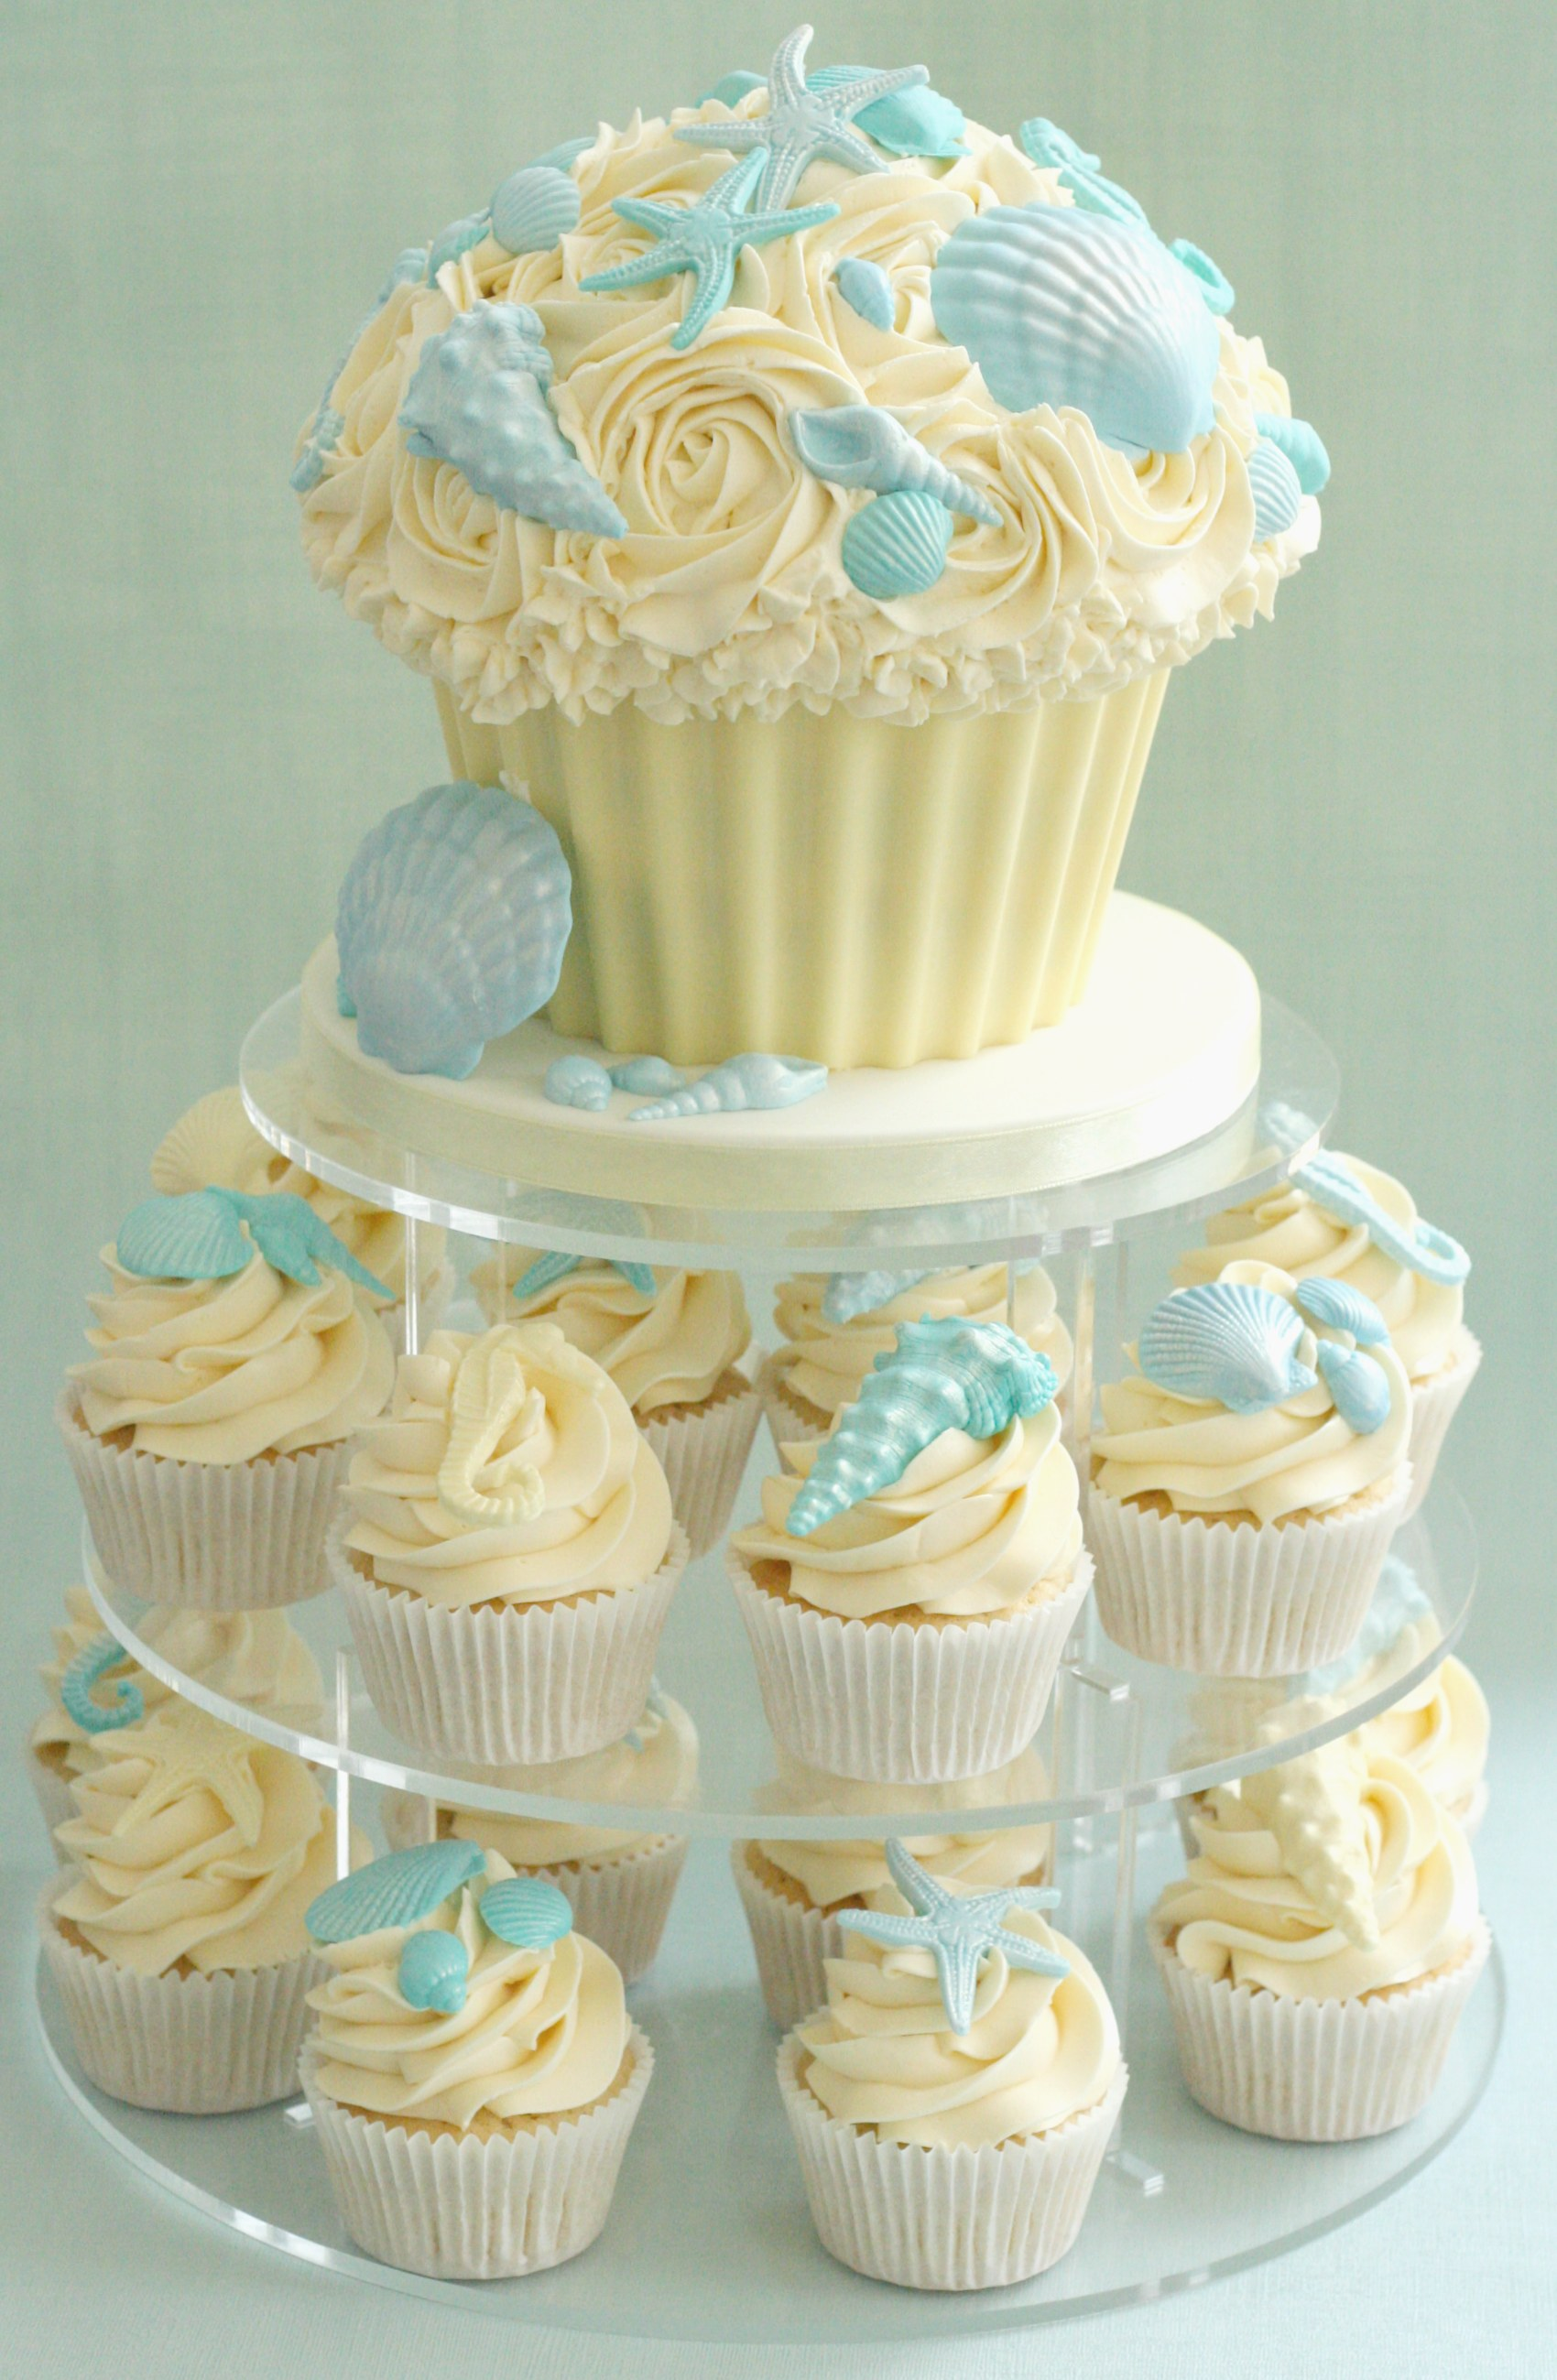 beach themed cakes and cupcakes hot girls wallpaper. Black Bedroom Furniture Sets. Home Design Ideas